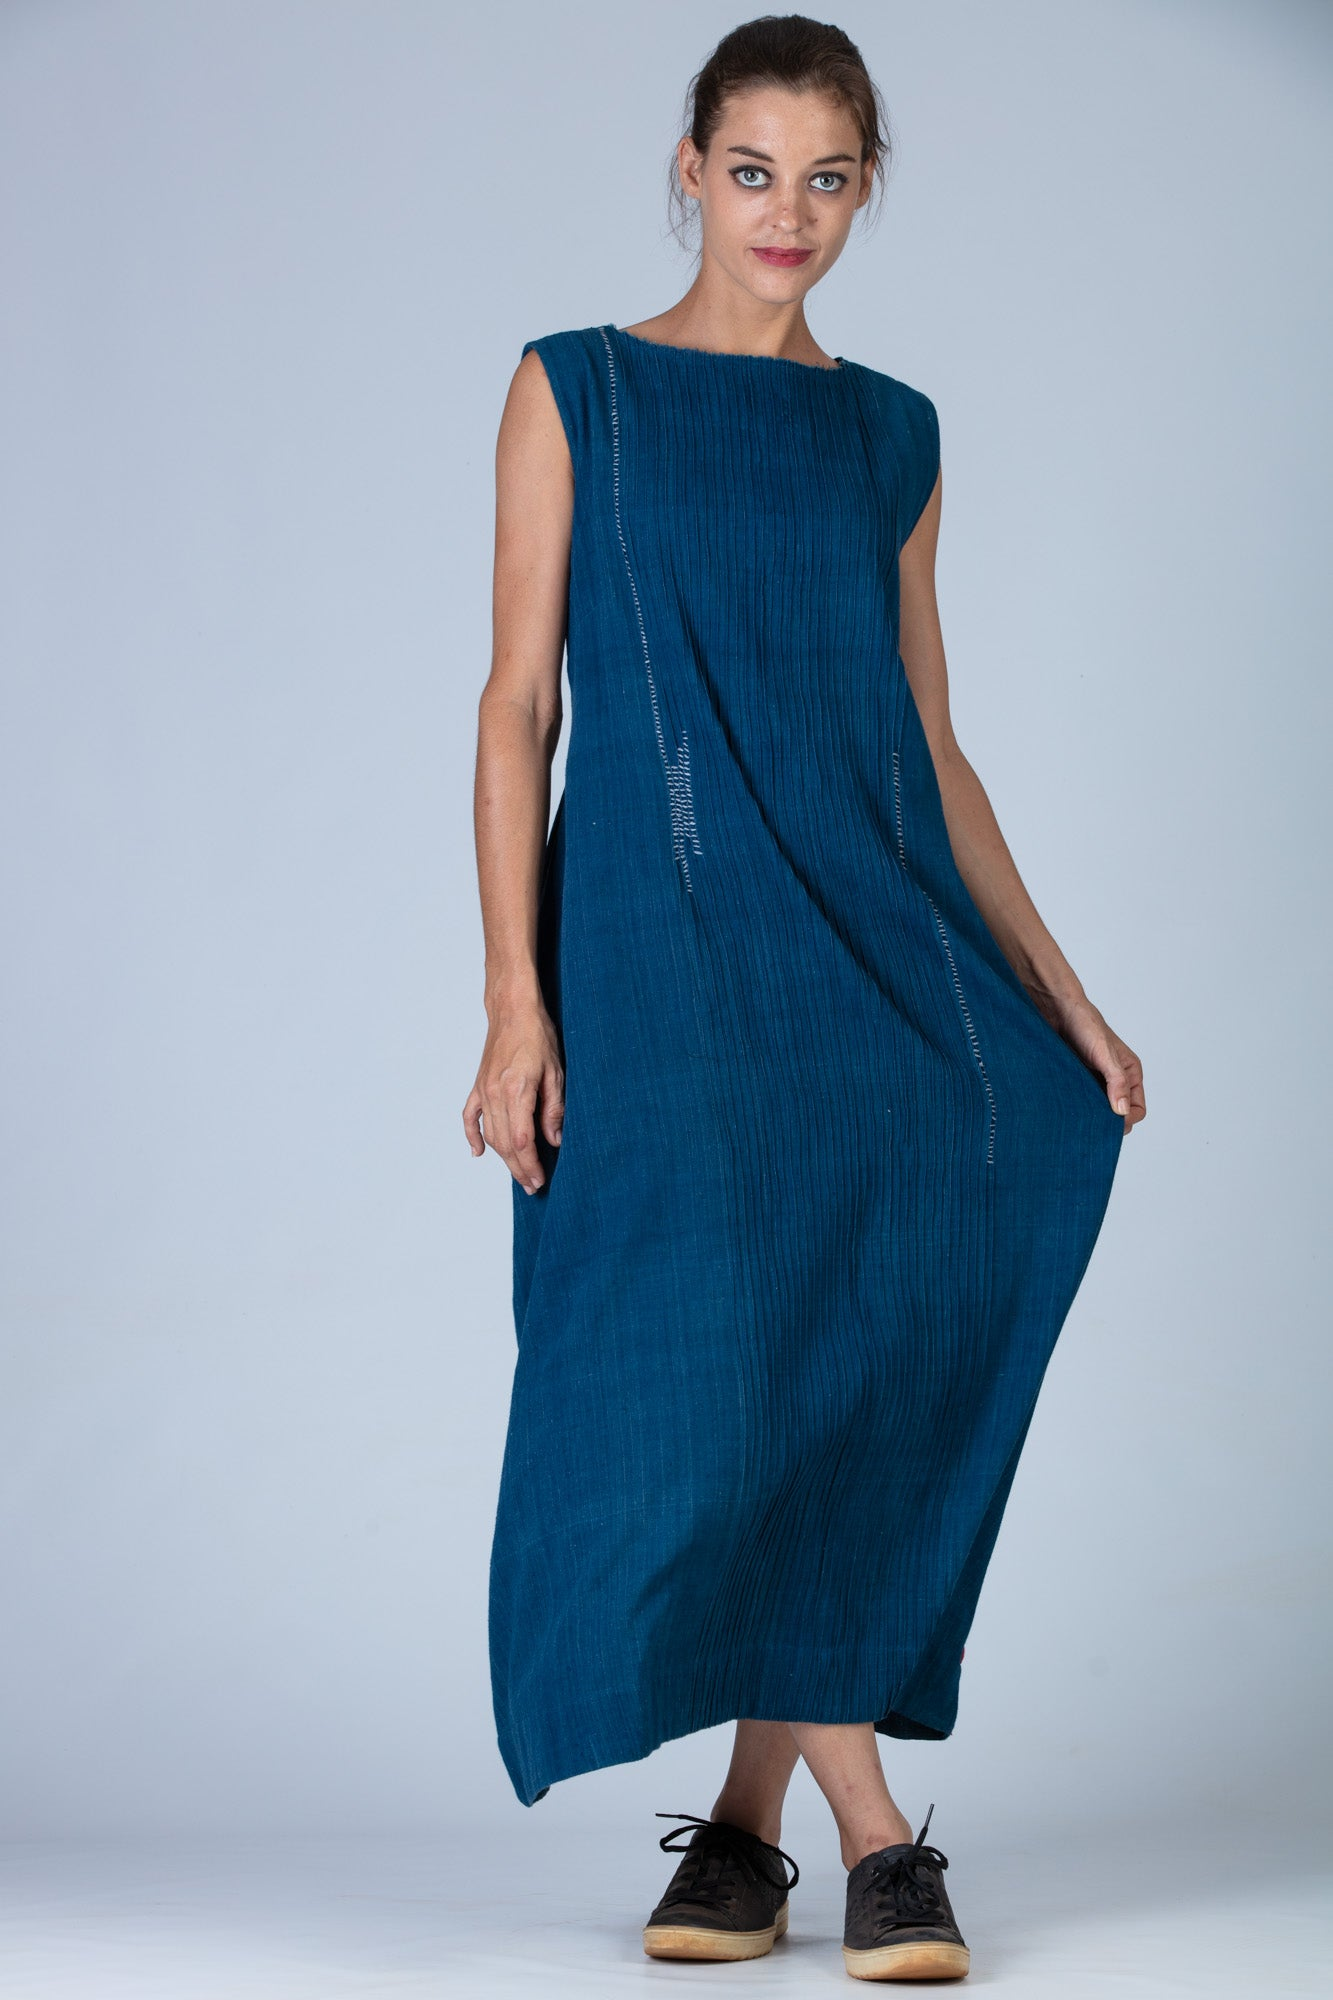 Natural Indigo Cotton Dress - NIKITA - Upasana Design Studio